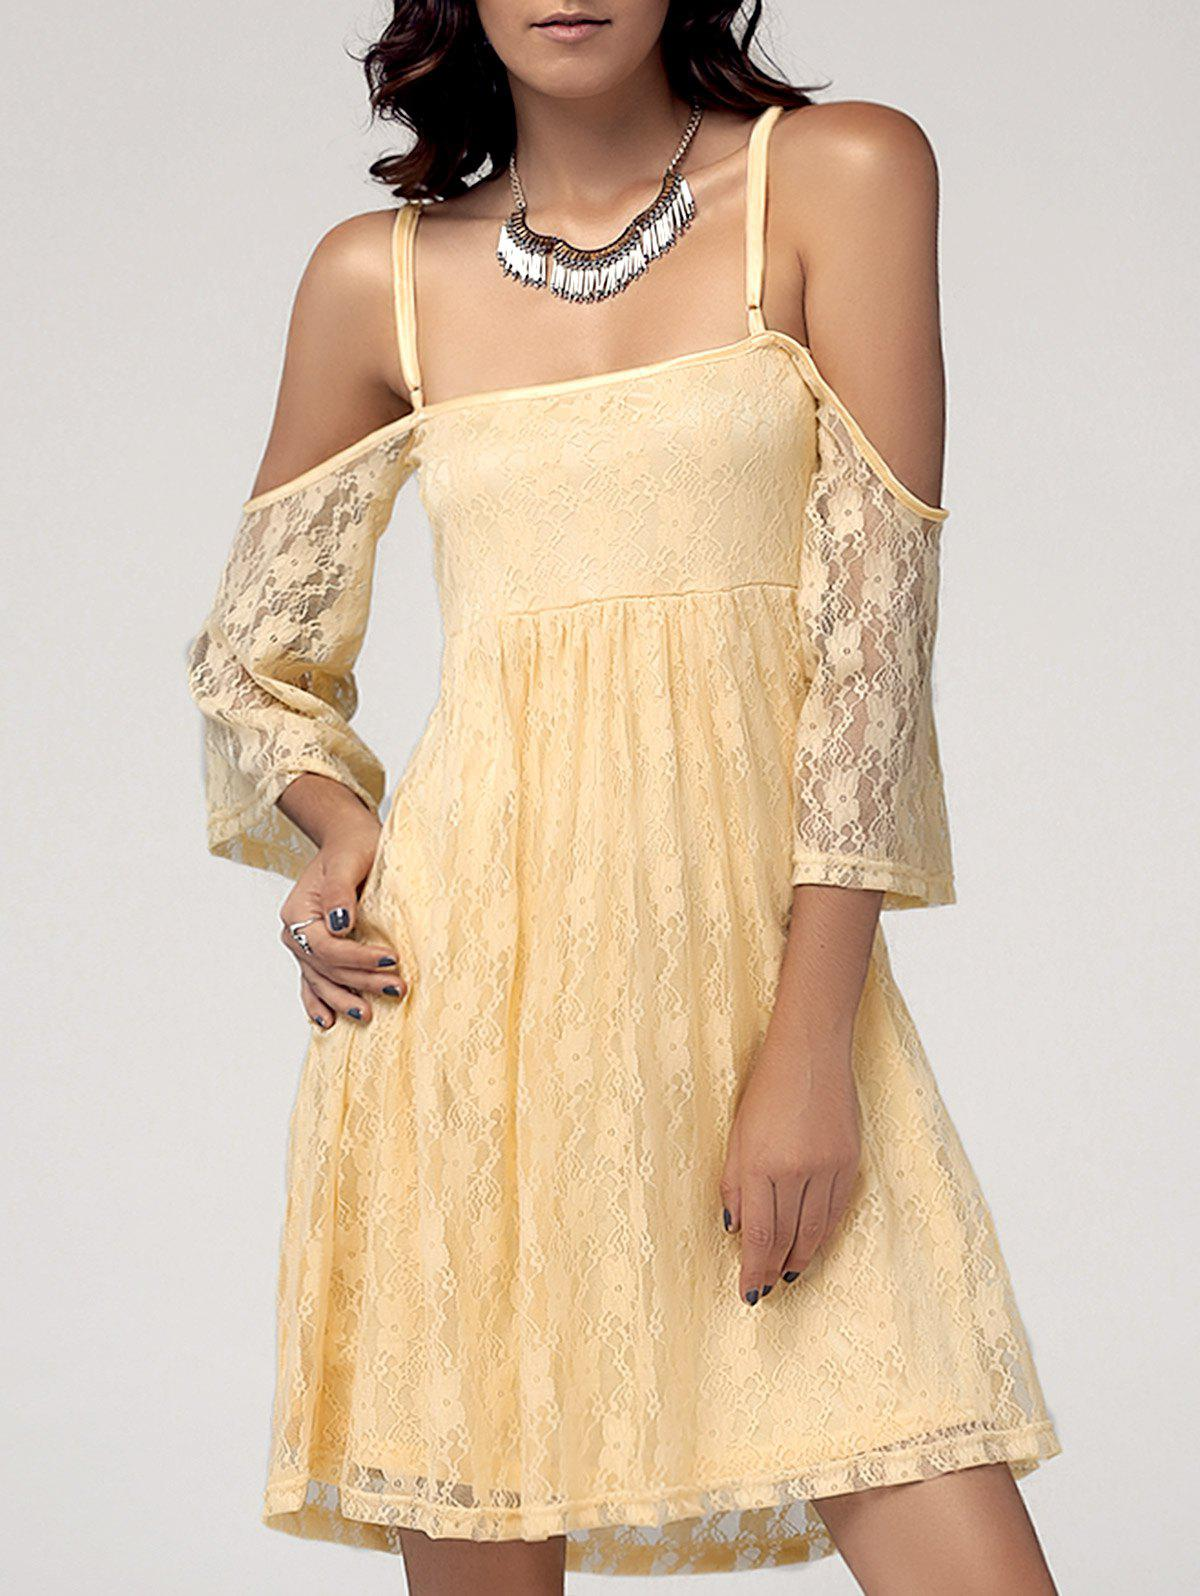 Sweet Women's Spaghetti Straps Cold Shoulder Lace Dress - M YELLOW